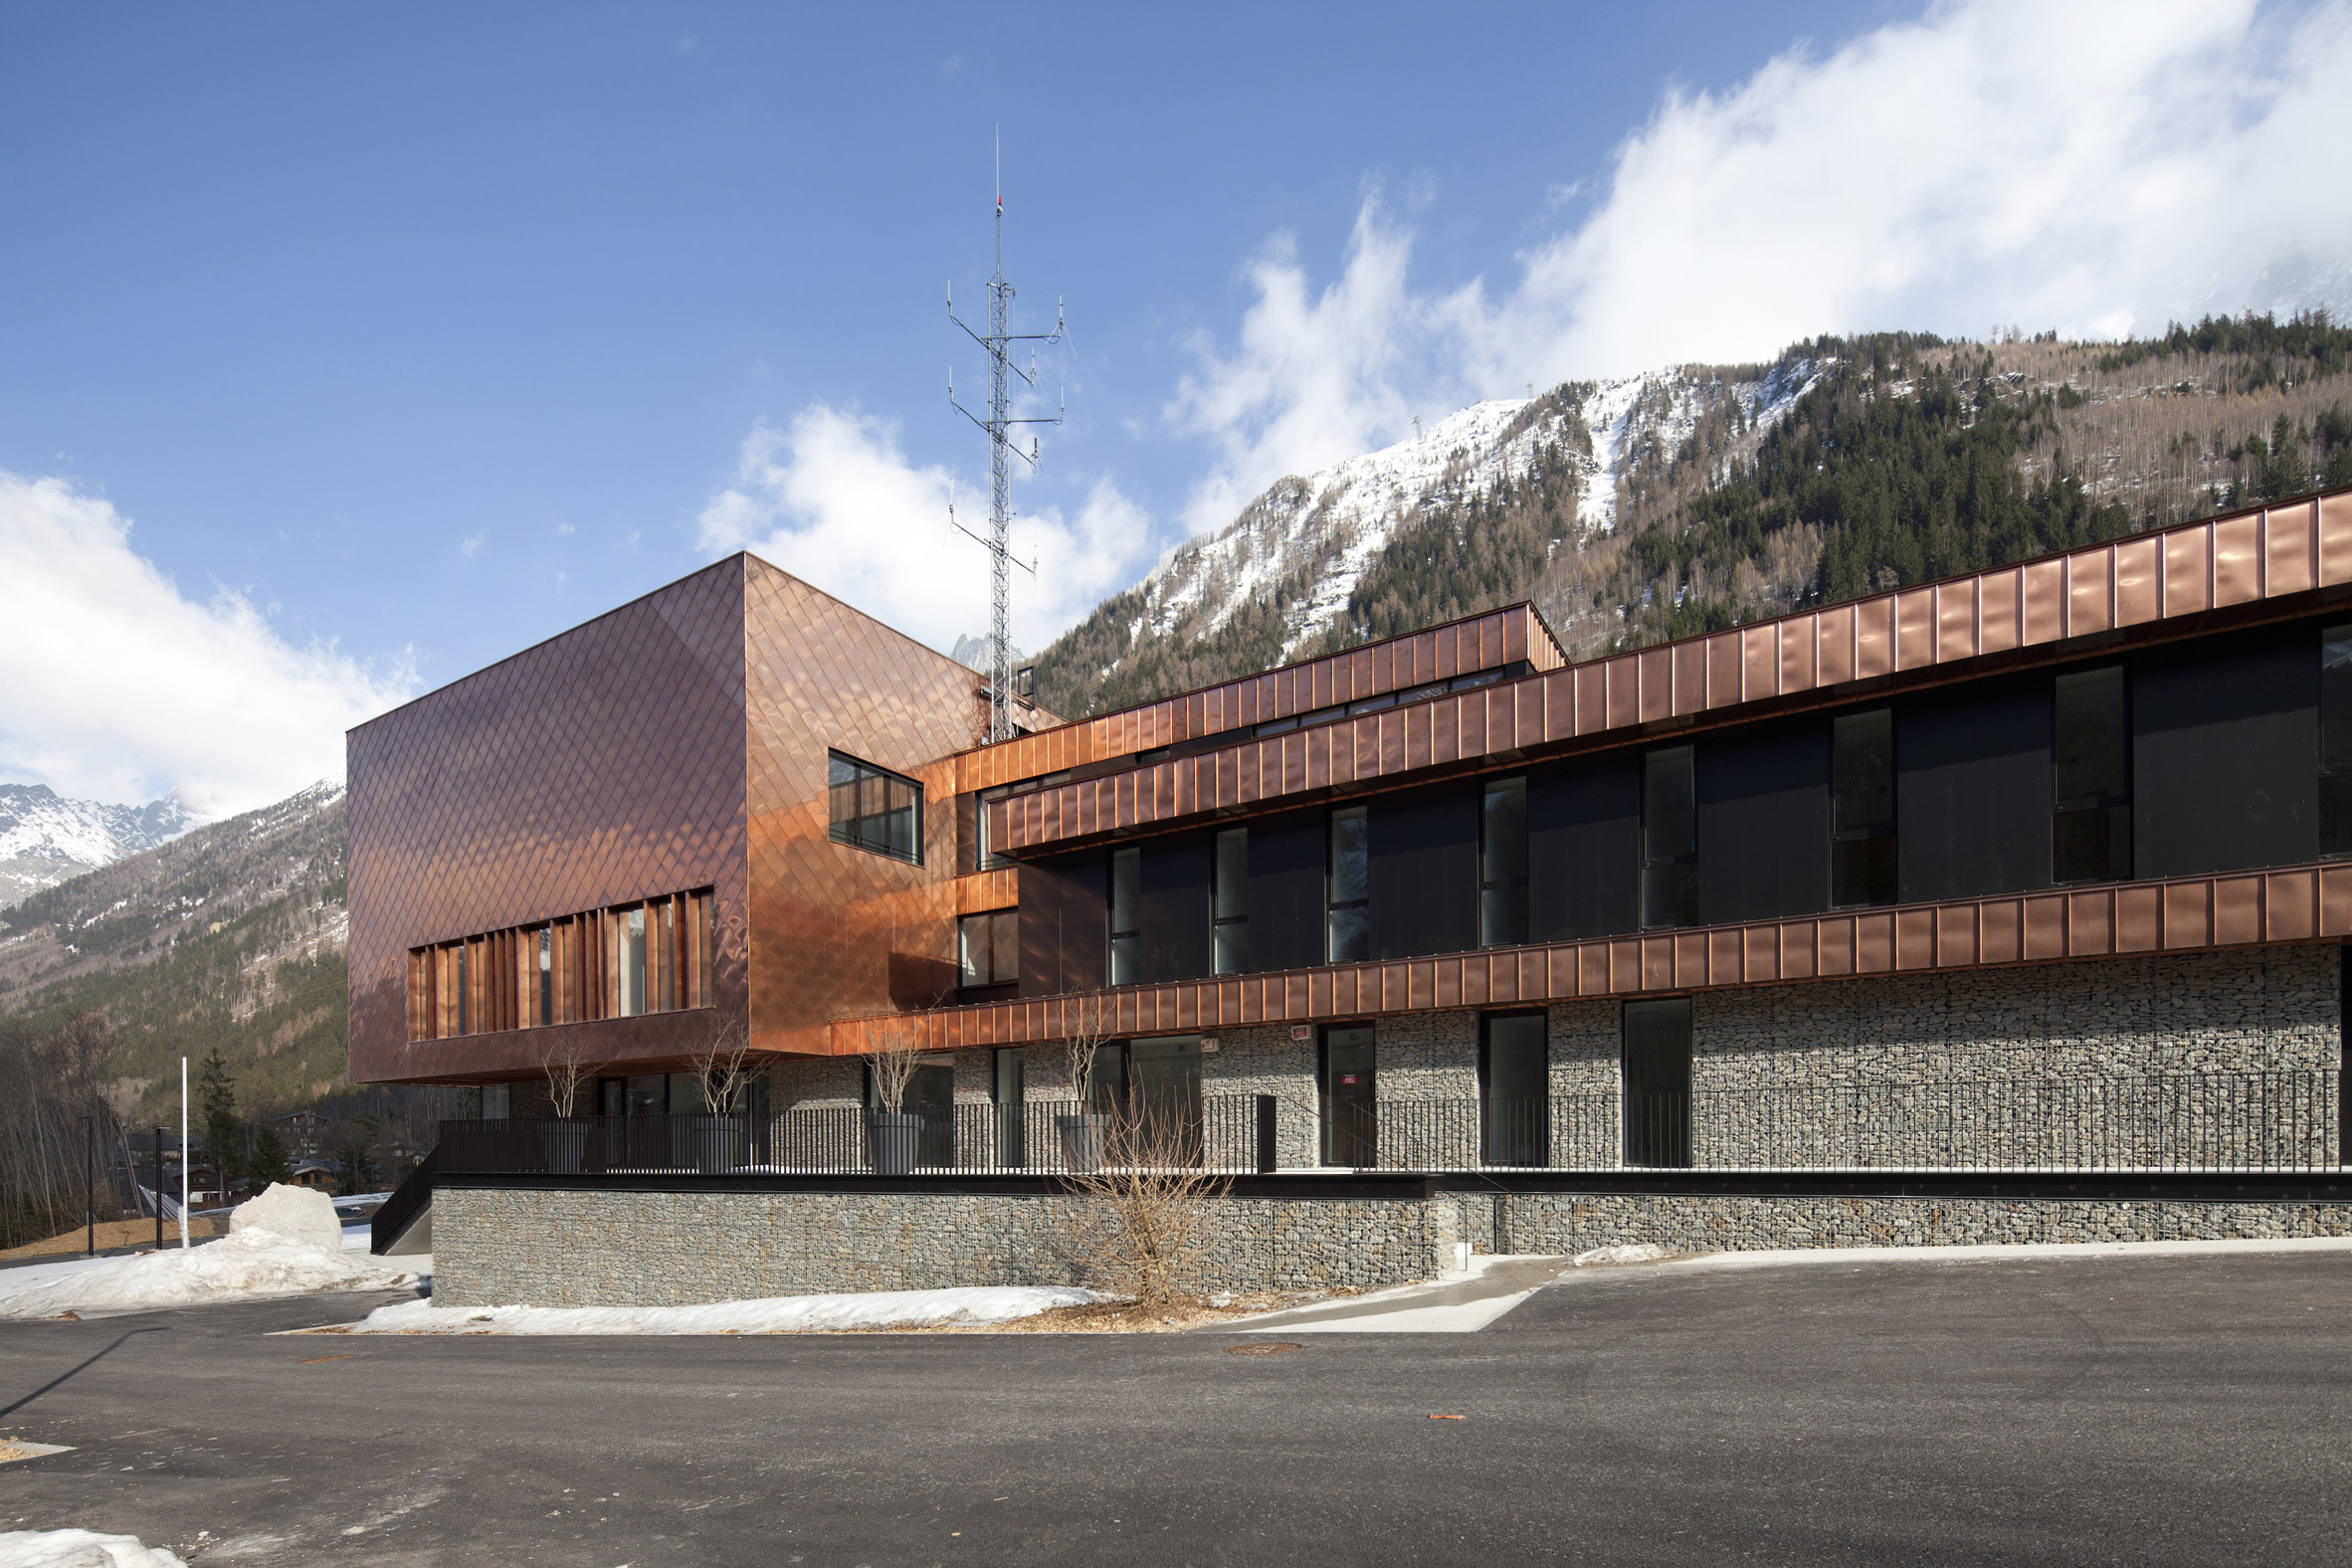 Copper scales cover fire station in French Alps by Studio Gardoni Architectures